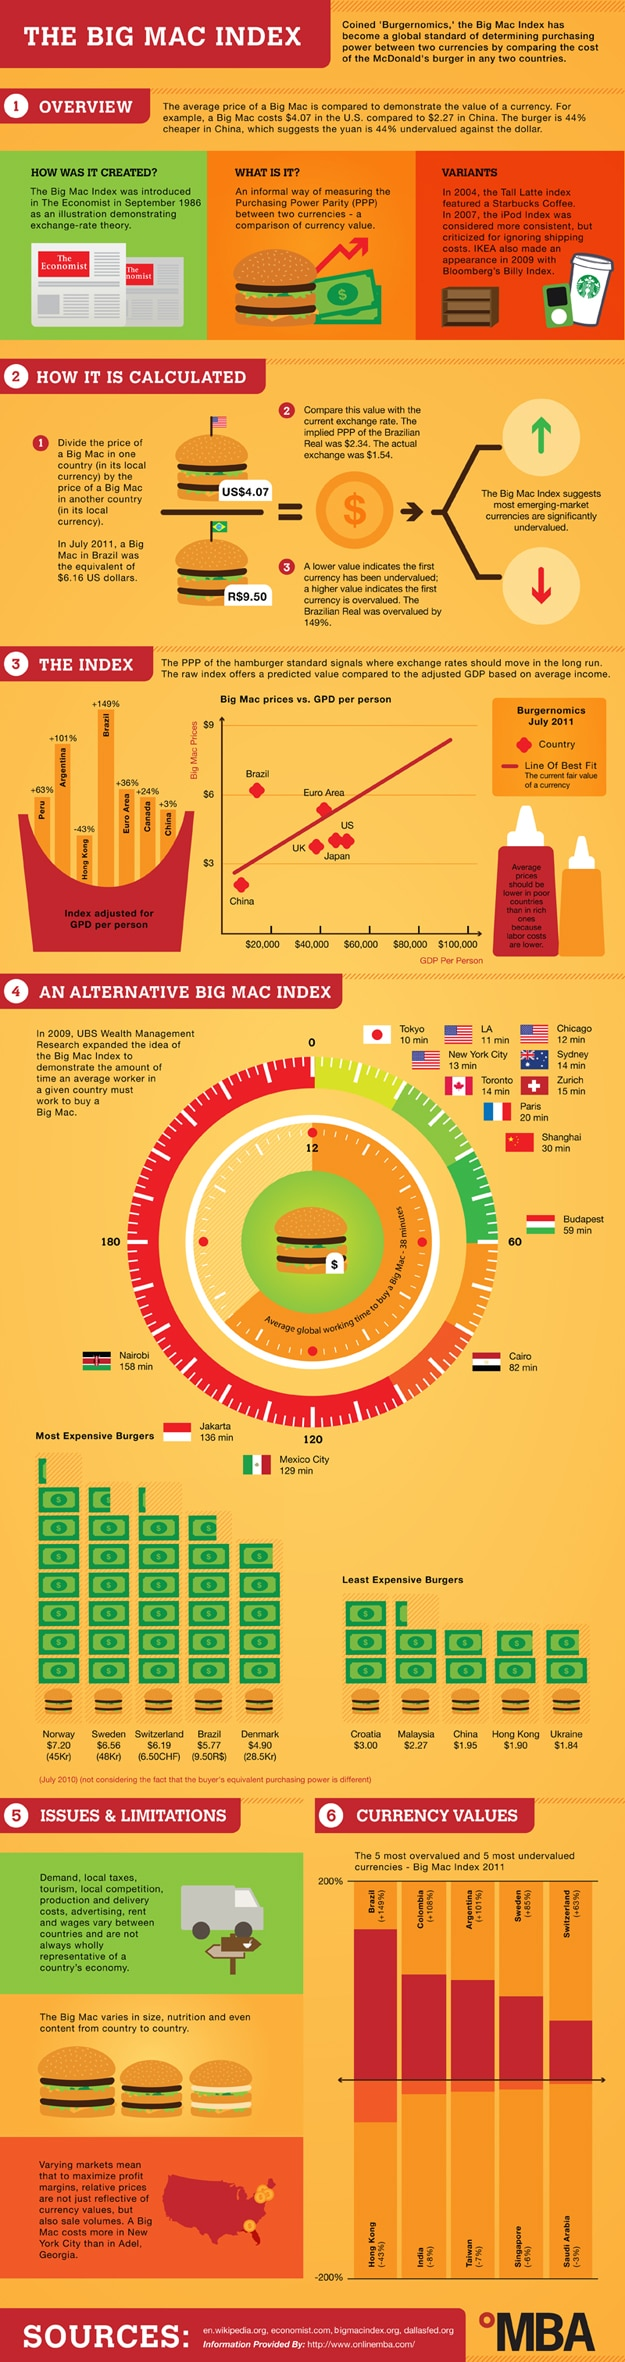 The Current Global Economy Explained With A Big Mac